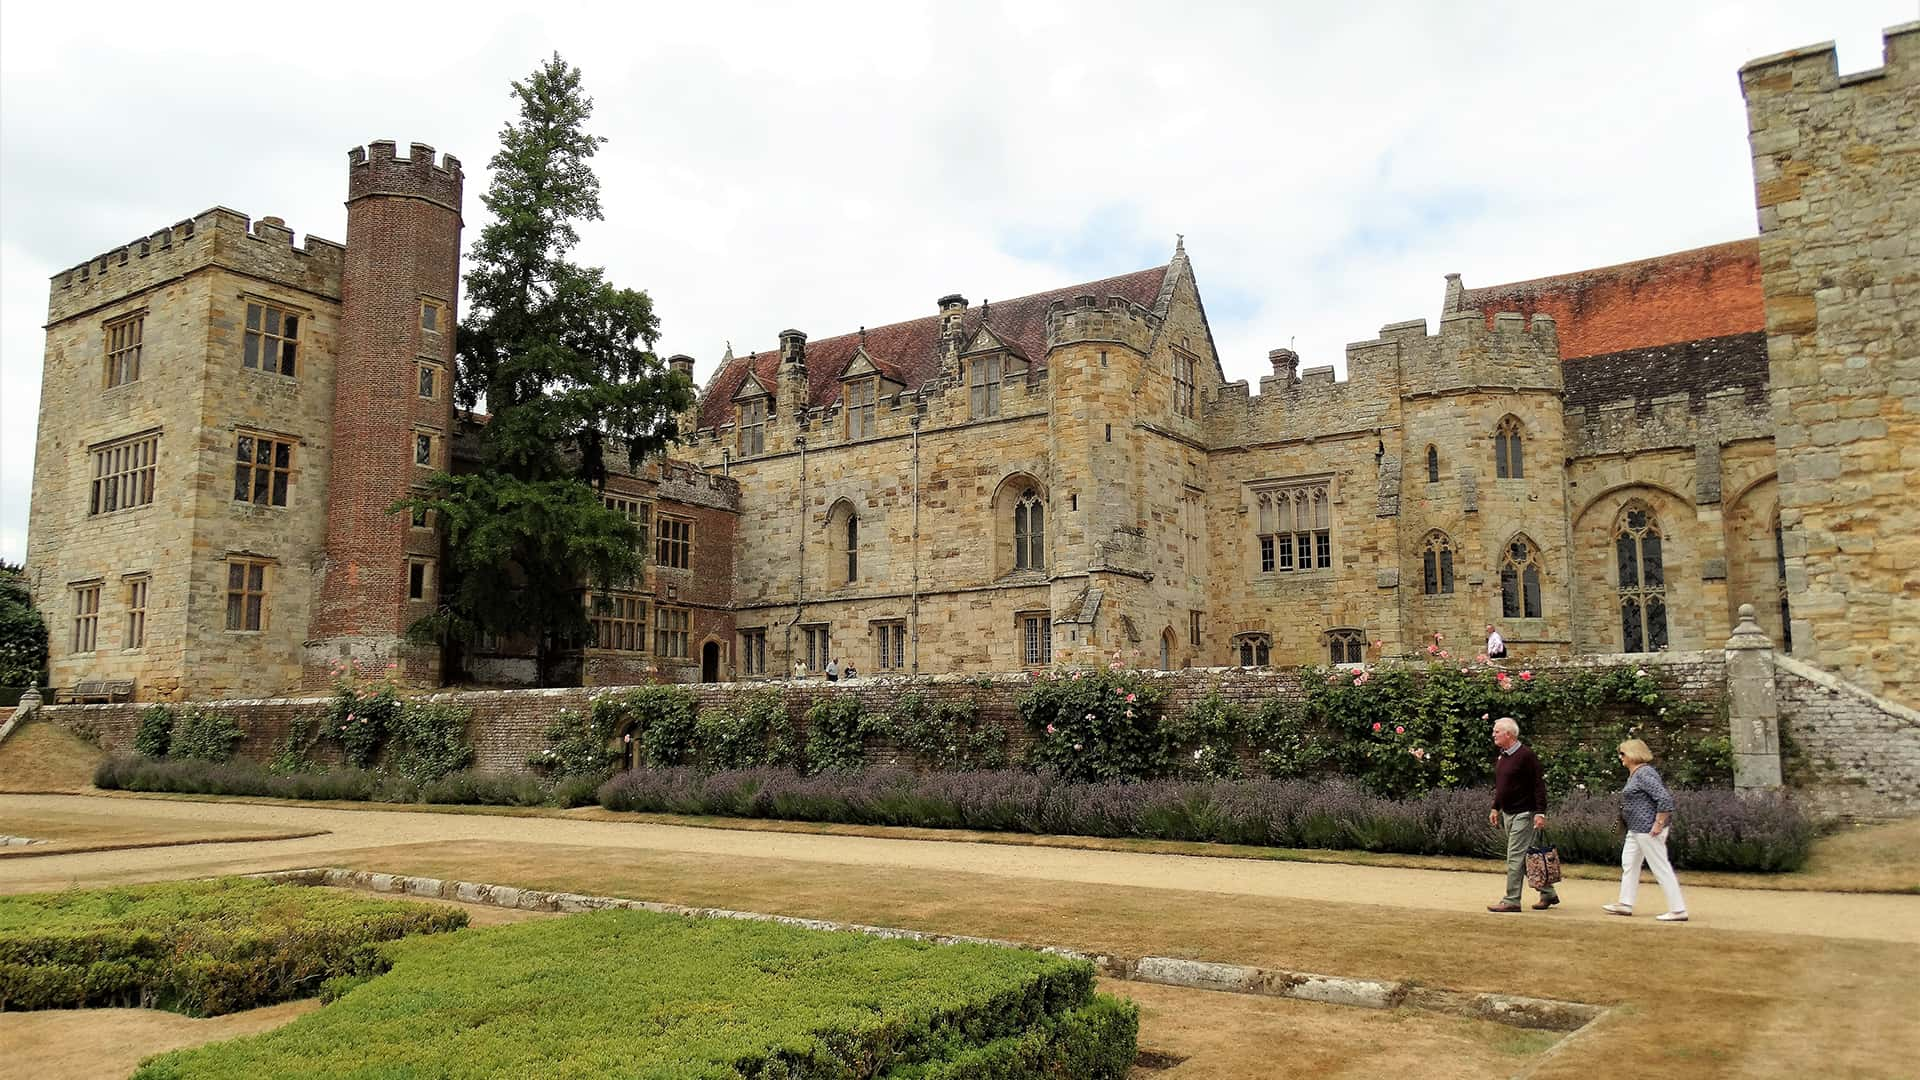 Penshurst Place and Wall